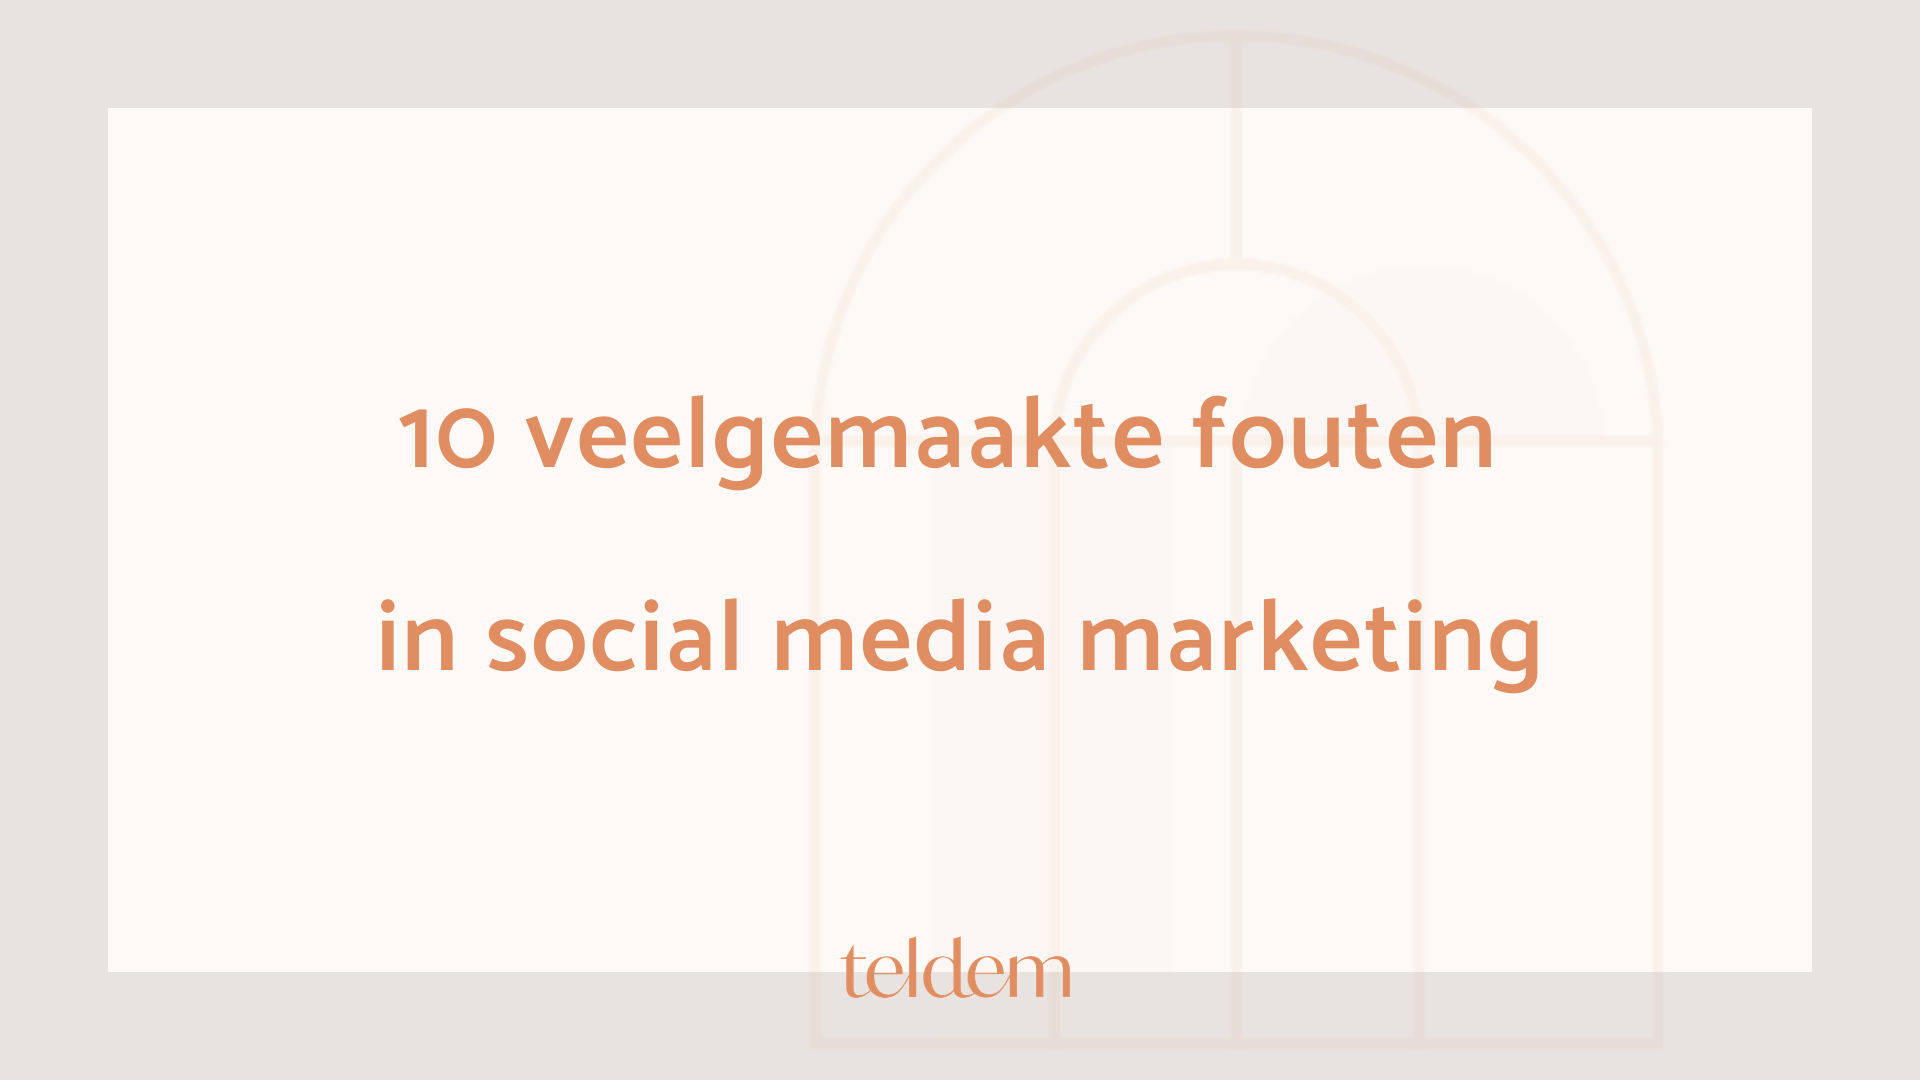 10 veelgemaakte fouten in social media marketing